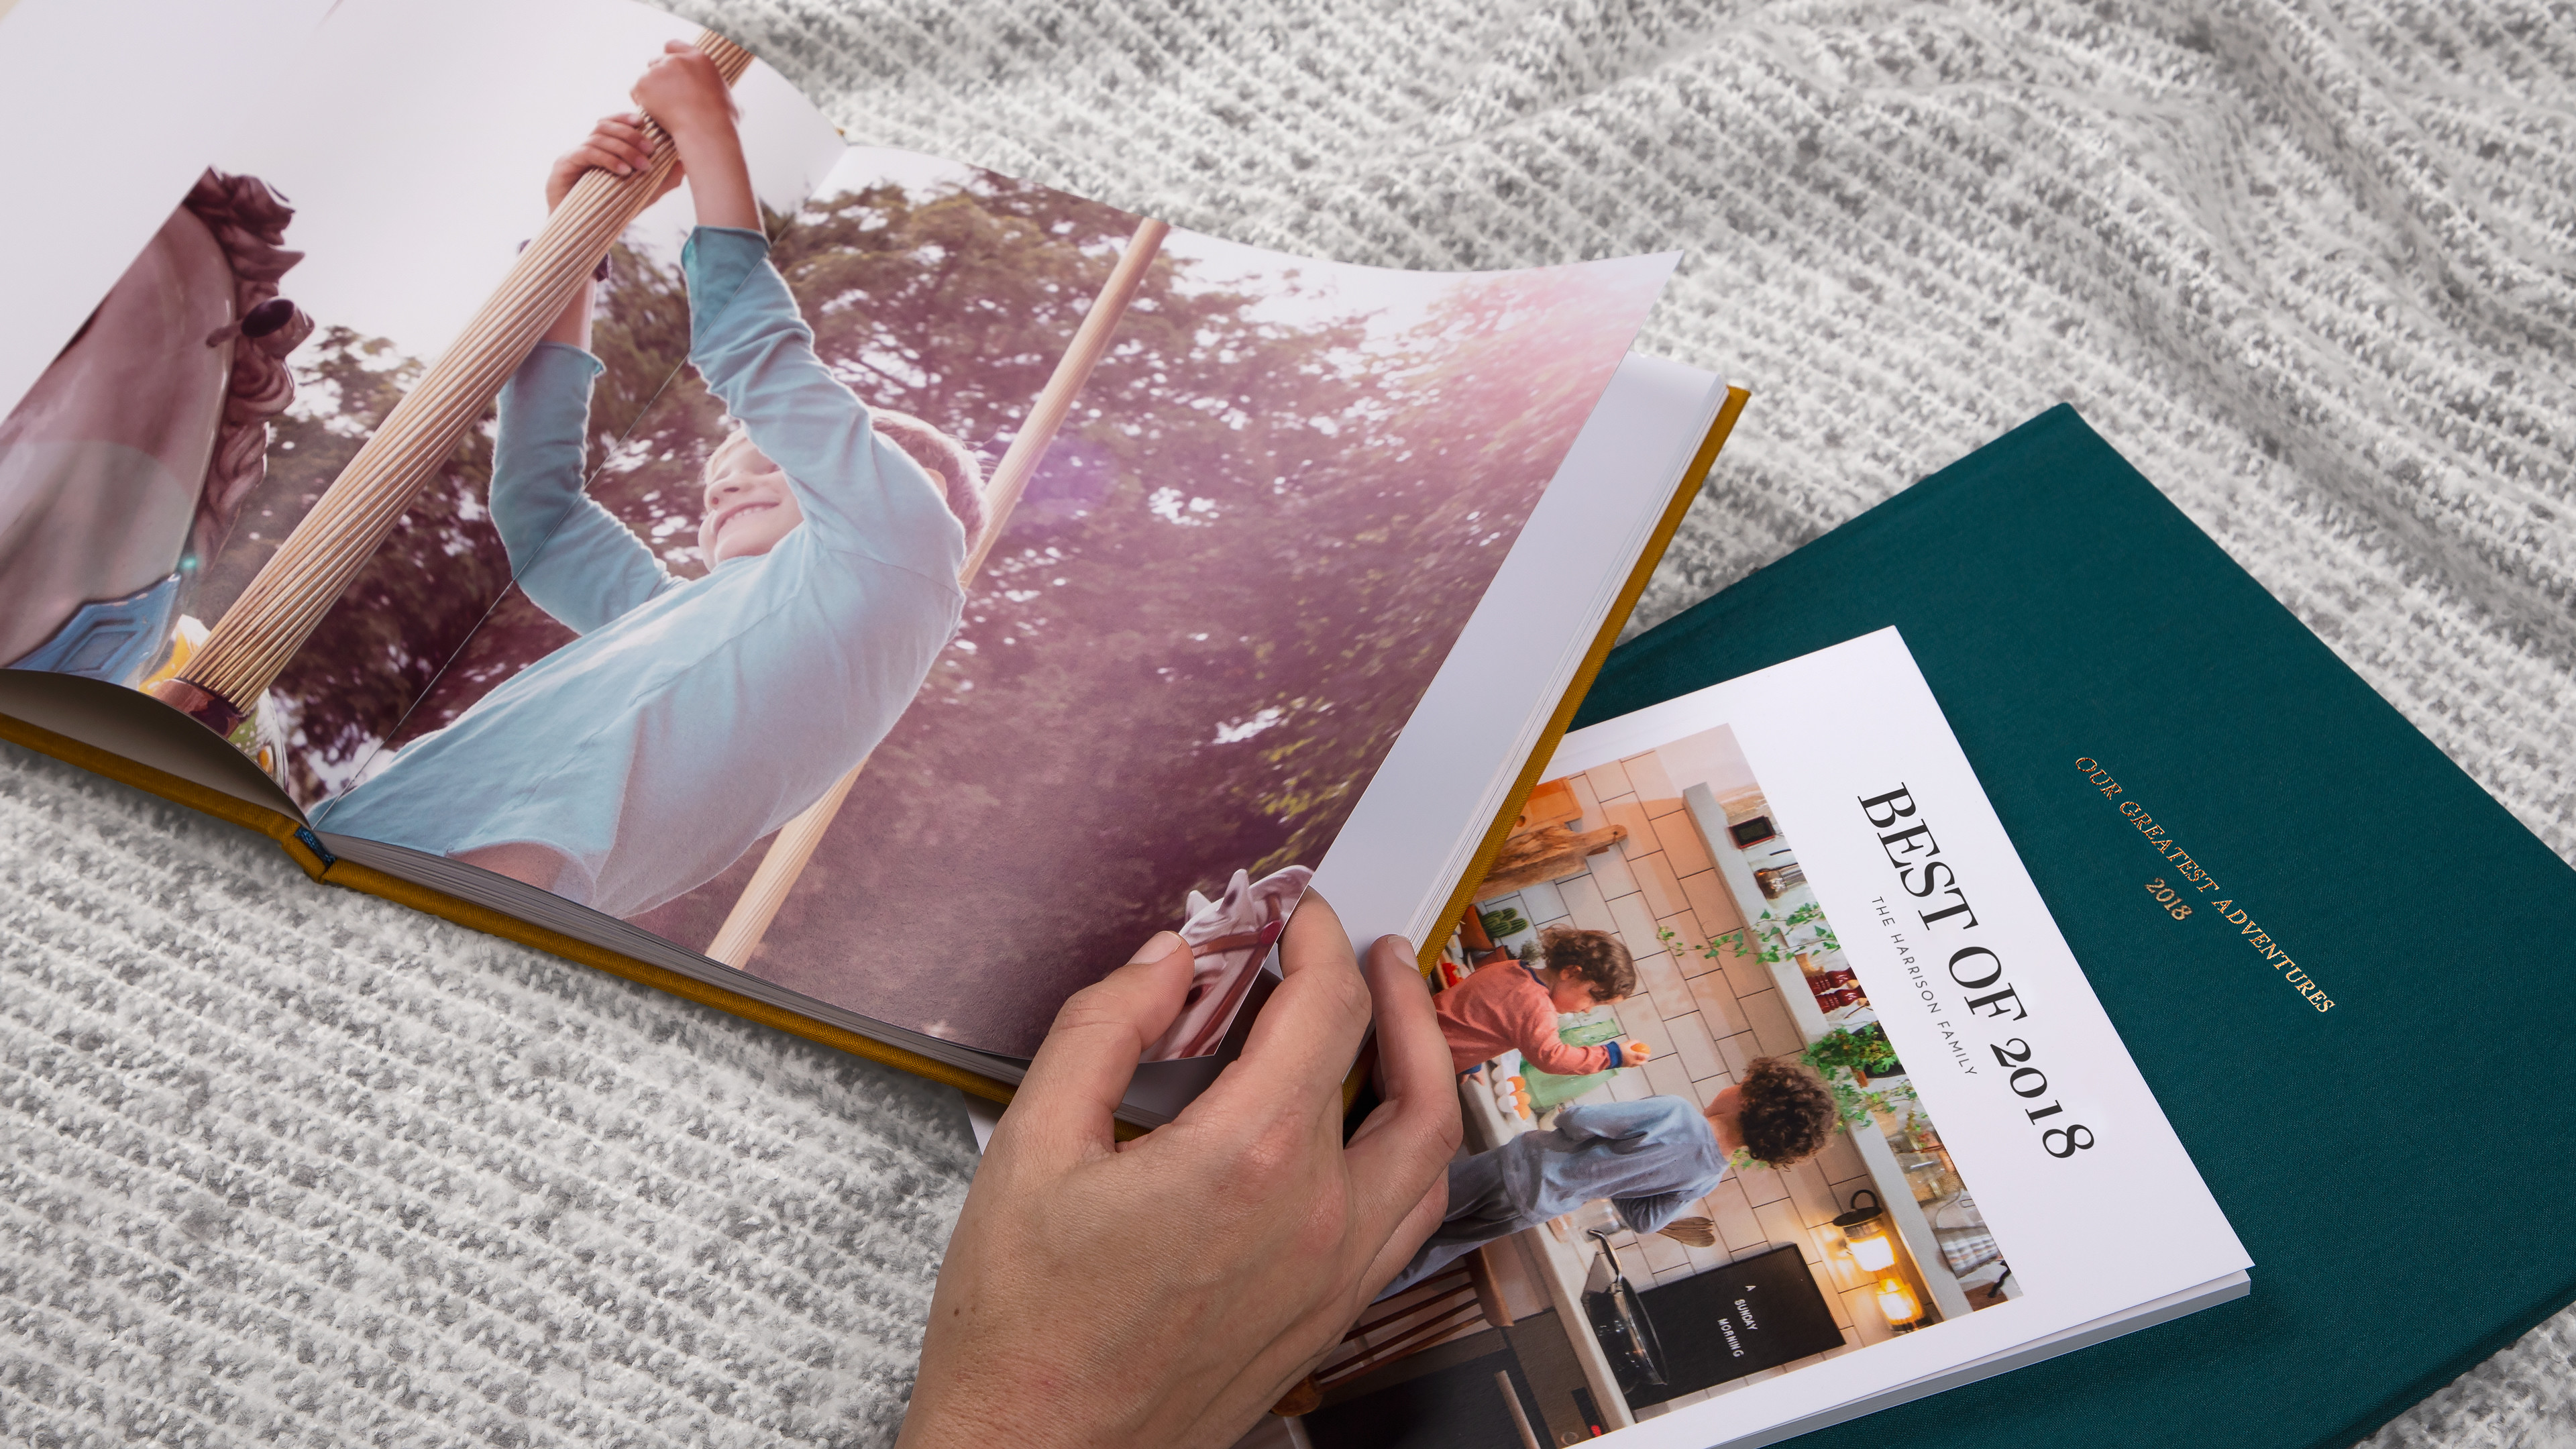 Personalised Photo Books from Rosemood